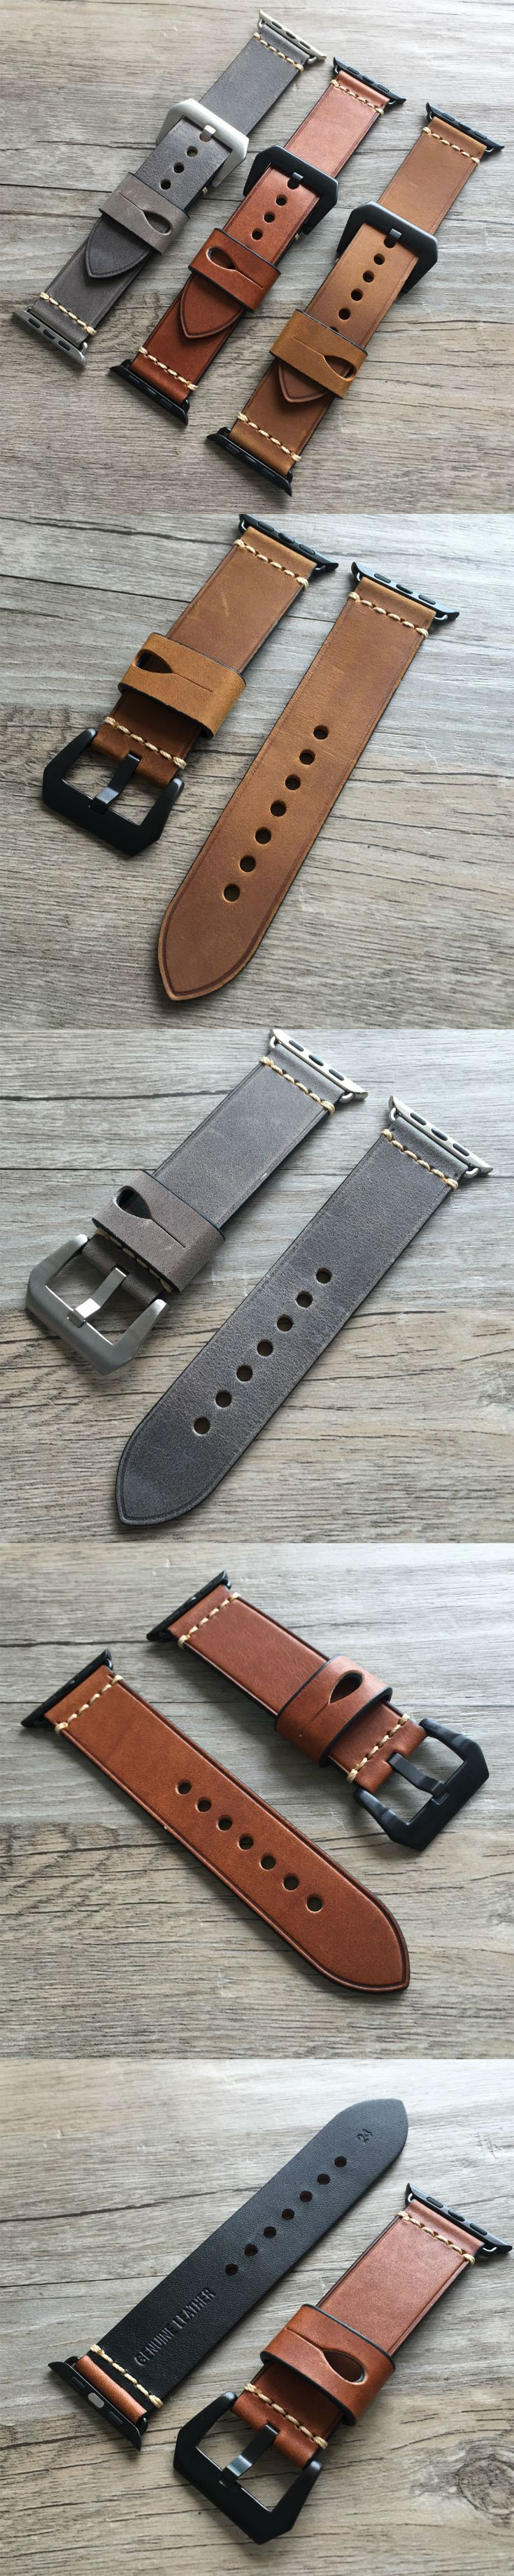 LEATHER APPLE WATCH STRAP - COOLEST WATCH STRAPS